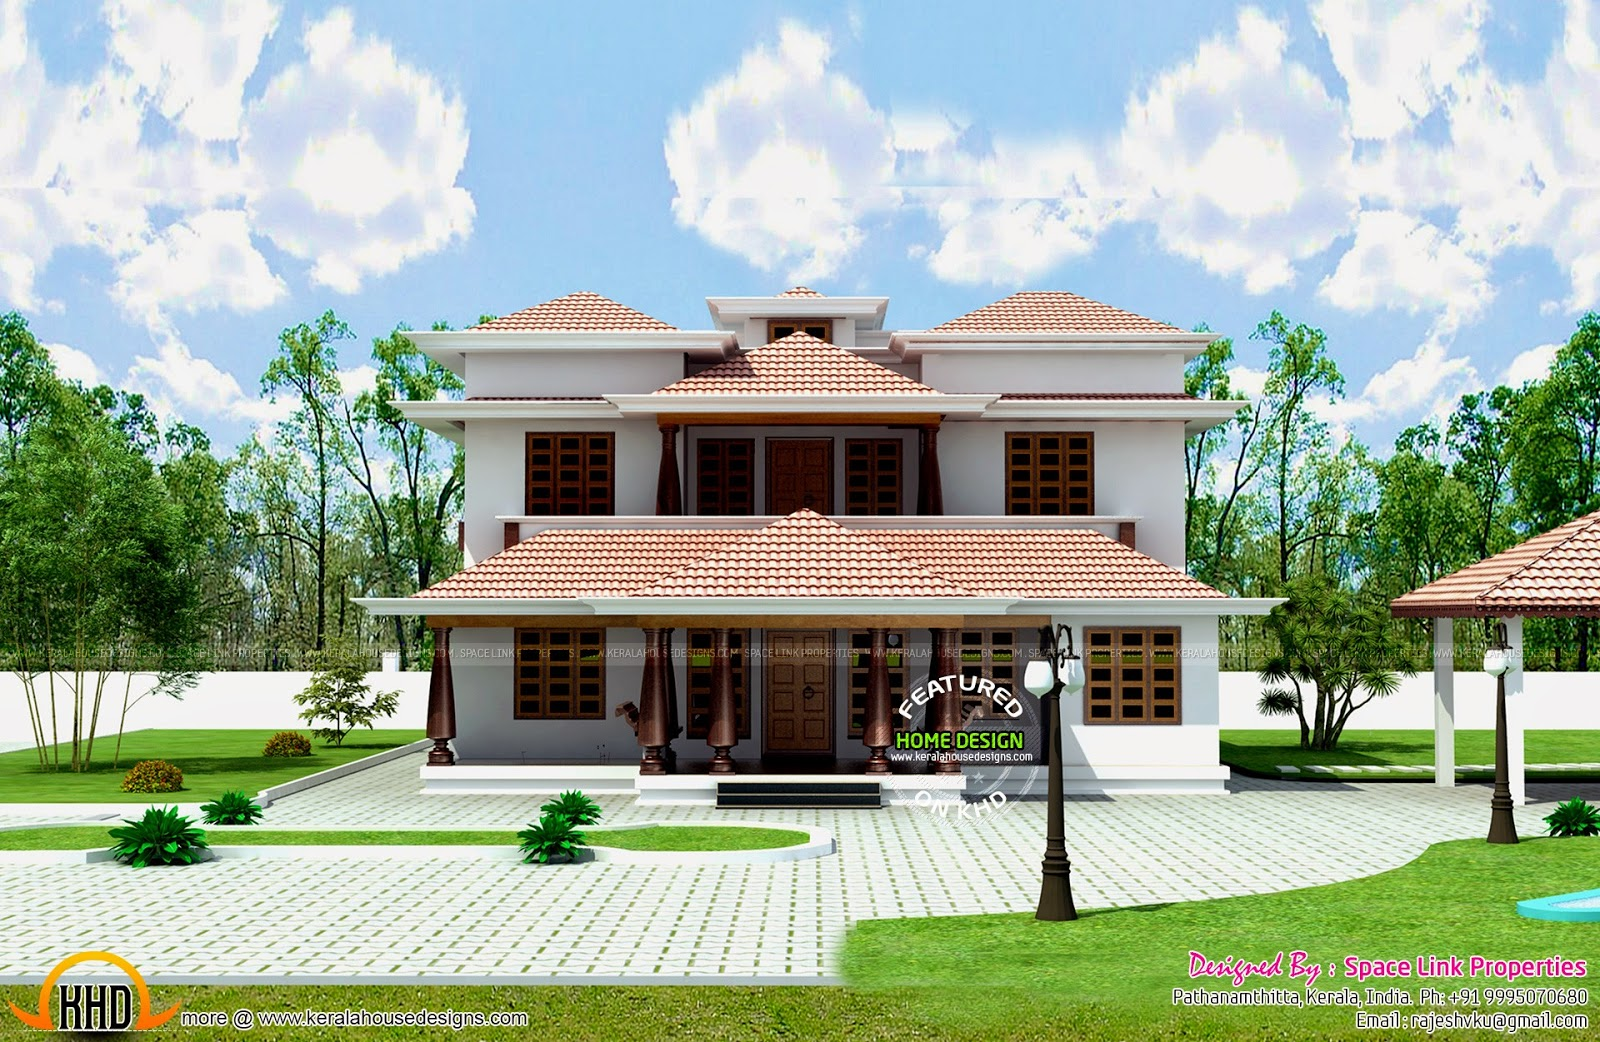 Typical kerala traditional house kerala home design and for Classic house design ideas